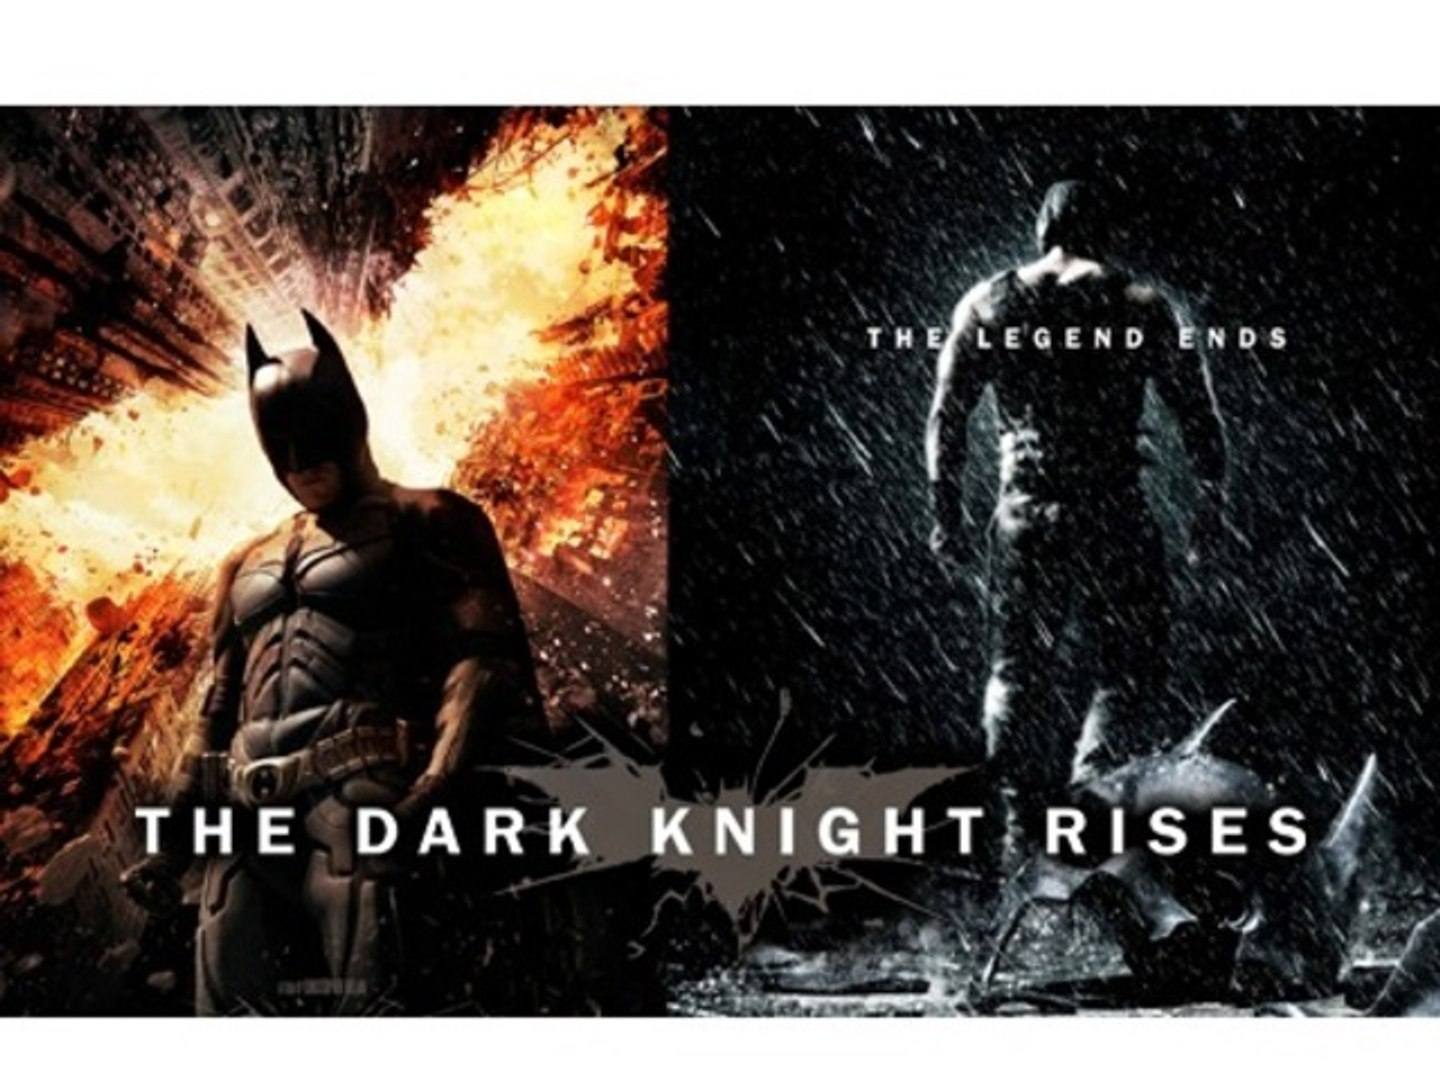 The Dark Knight Rises Movie Preview - Christian Bale, Michael Caine and Tom Hardy